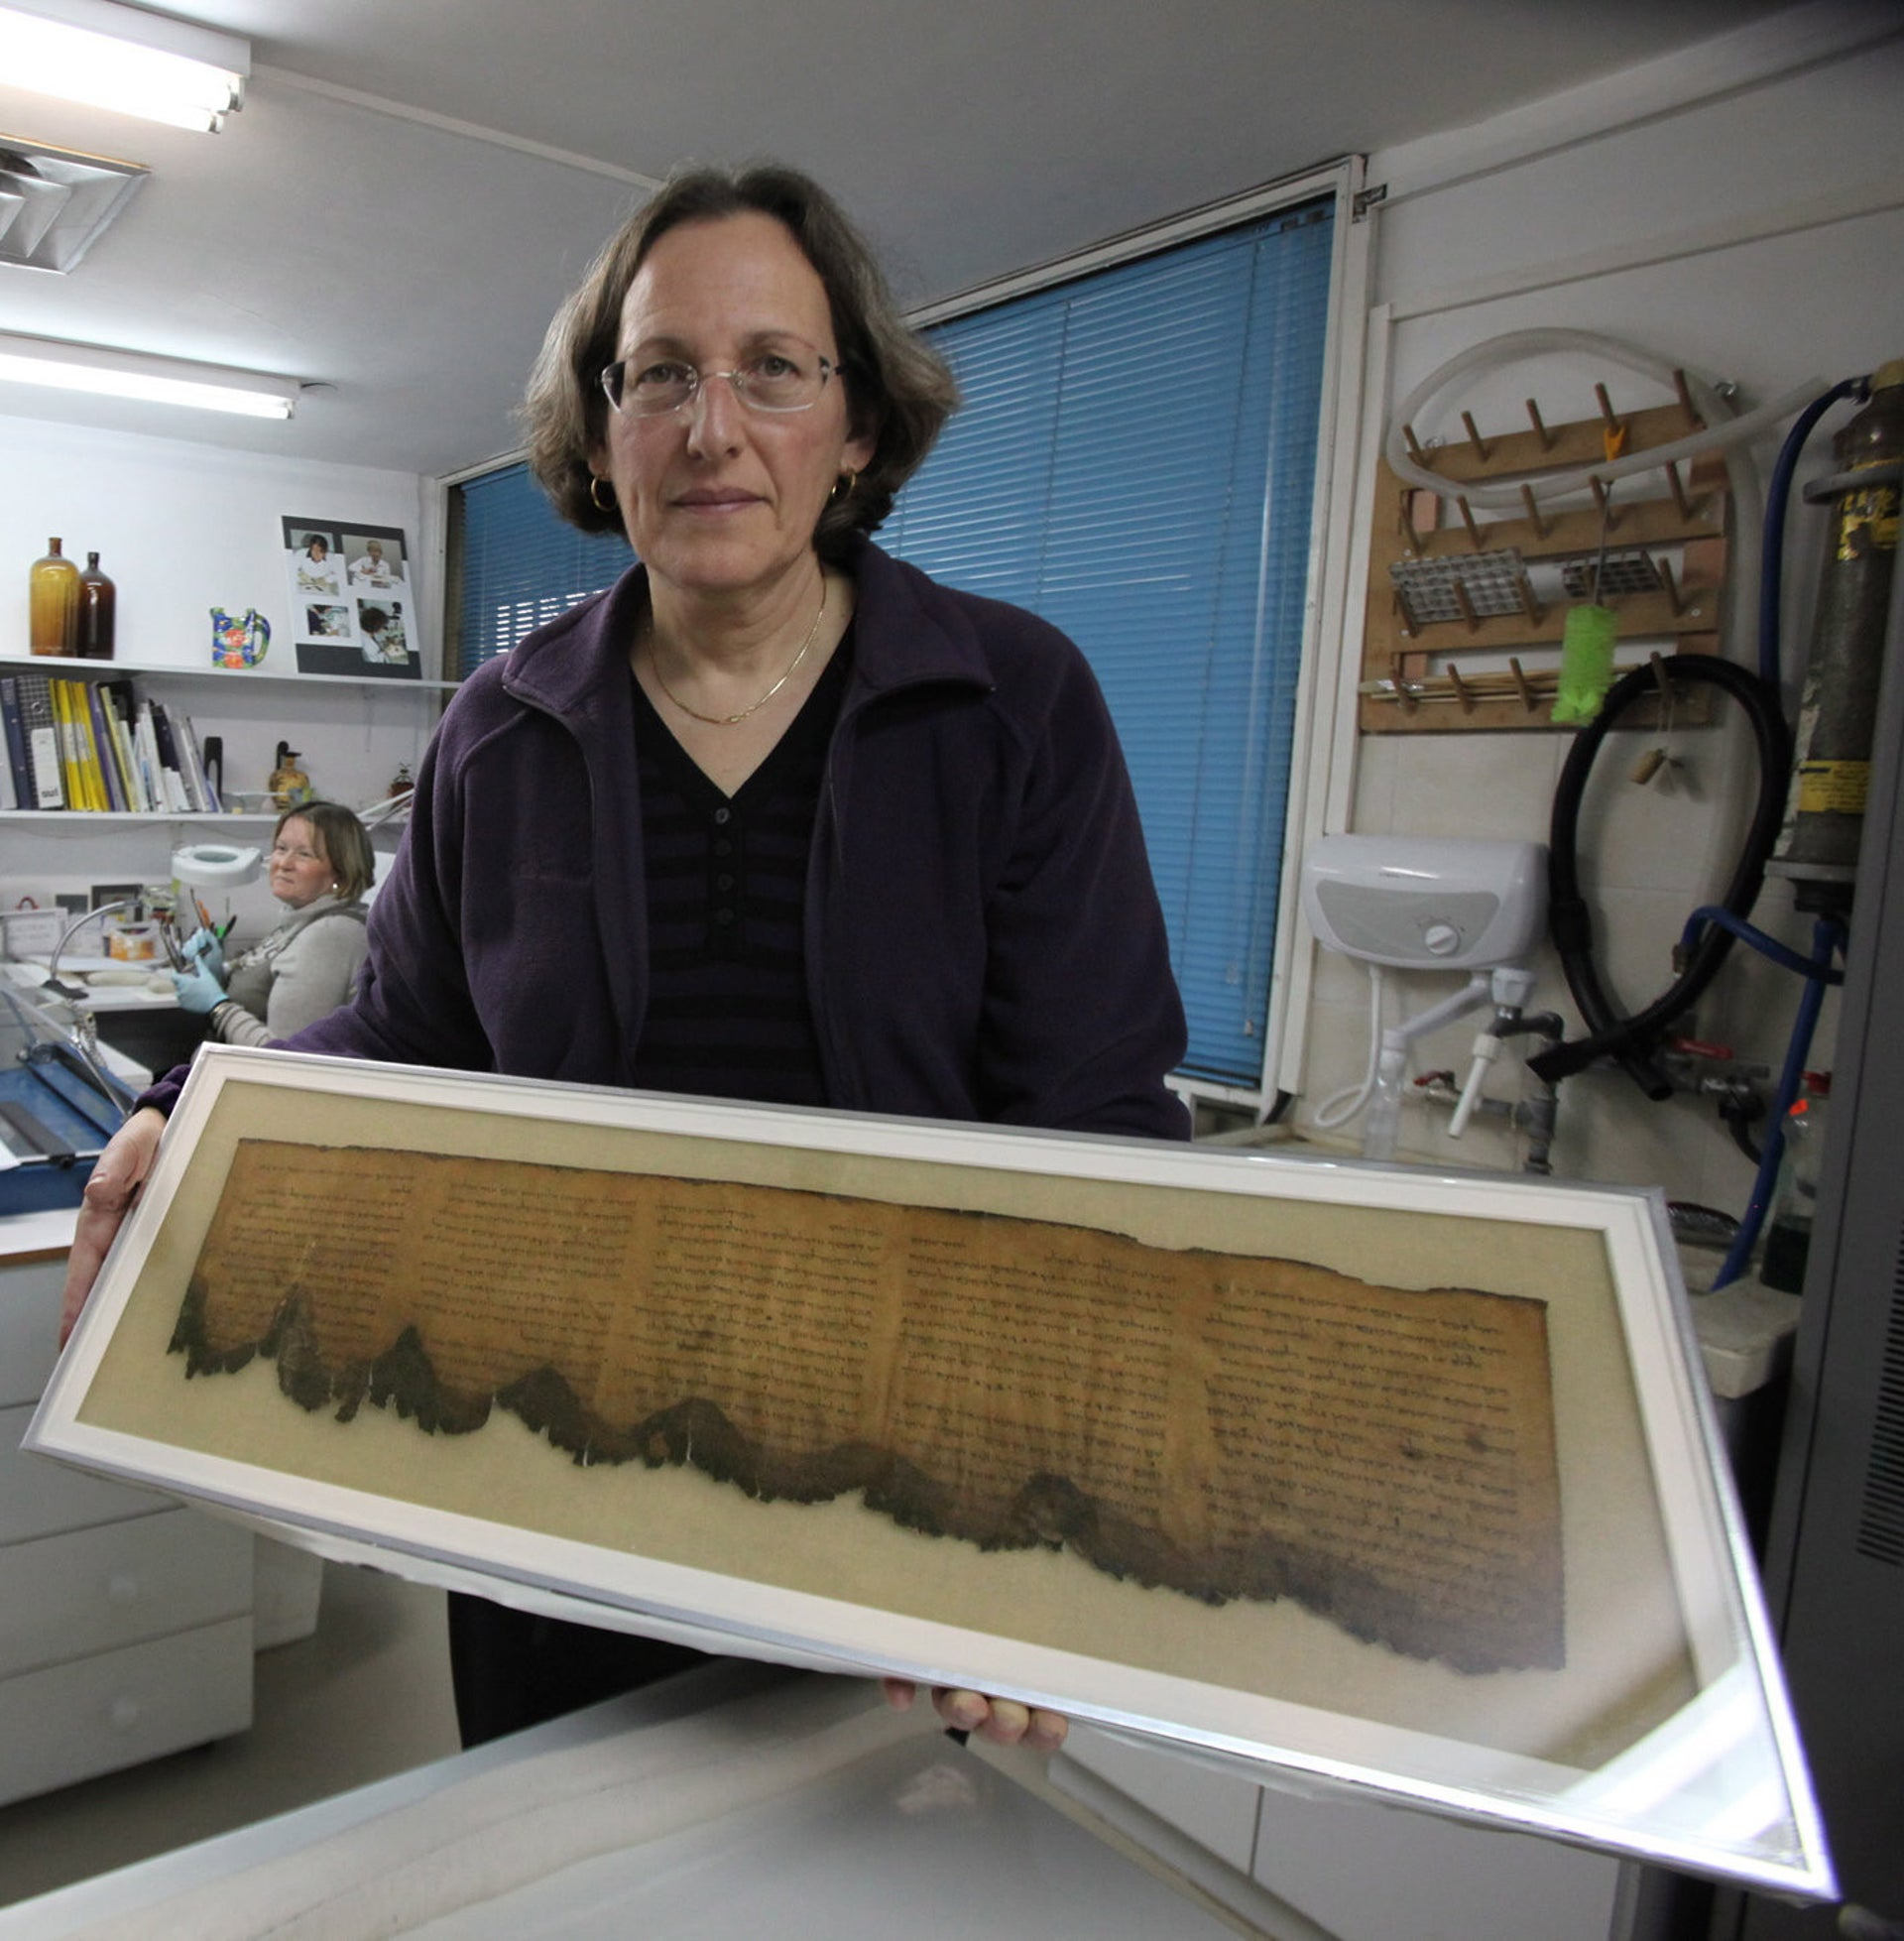 Pnina Shor with a relatively legible piece of the Dead Sea Scrolls